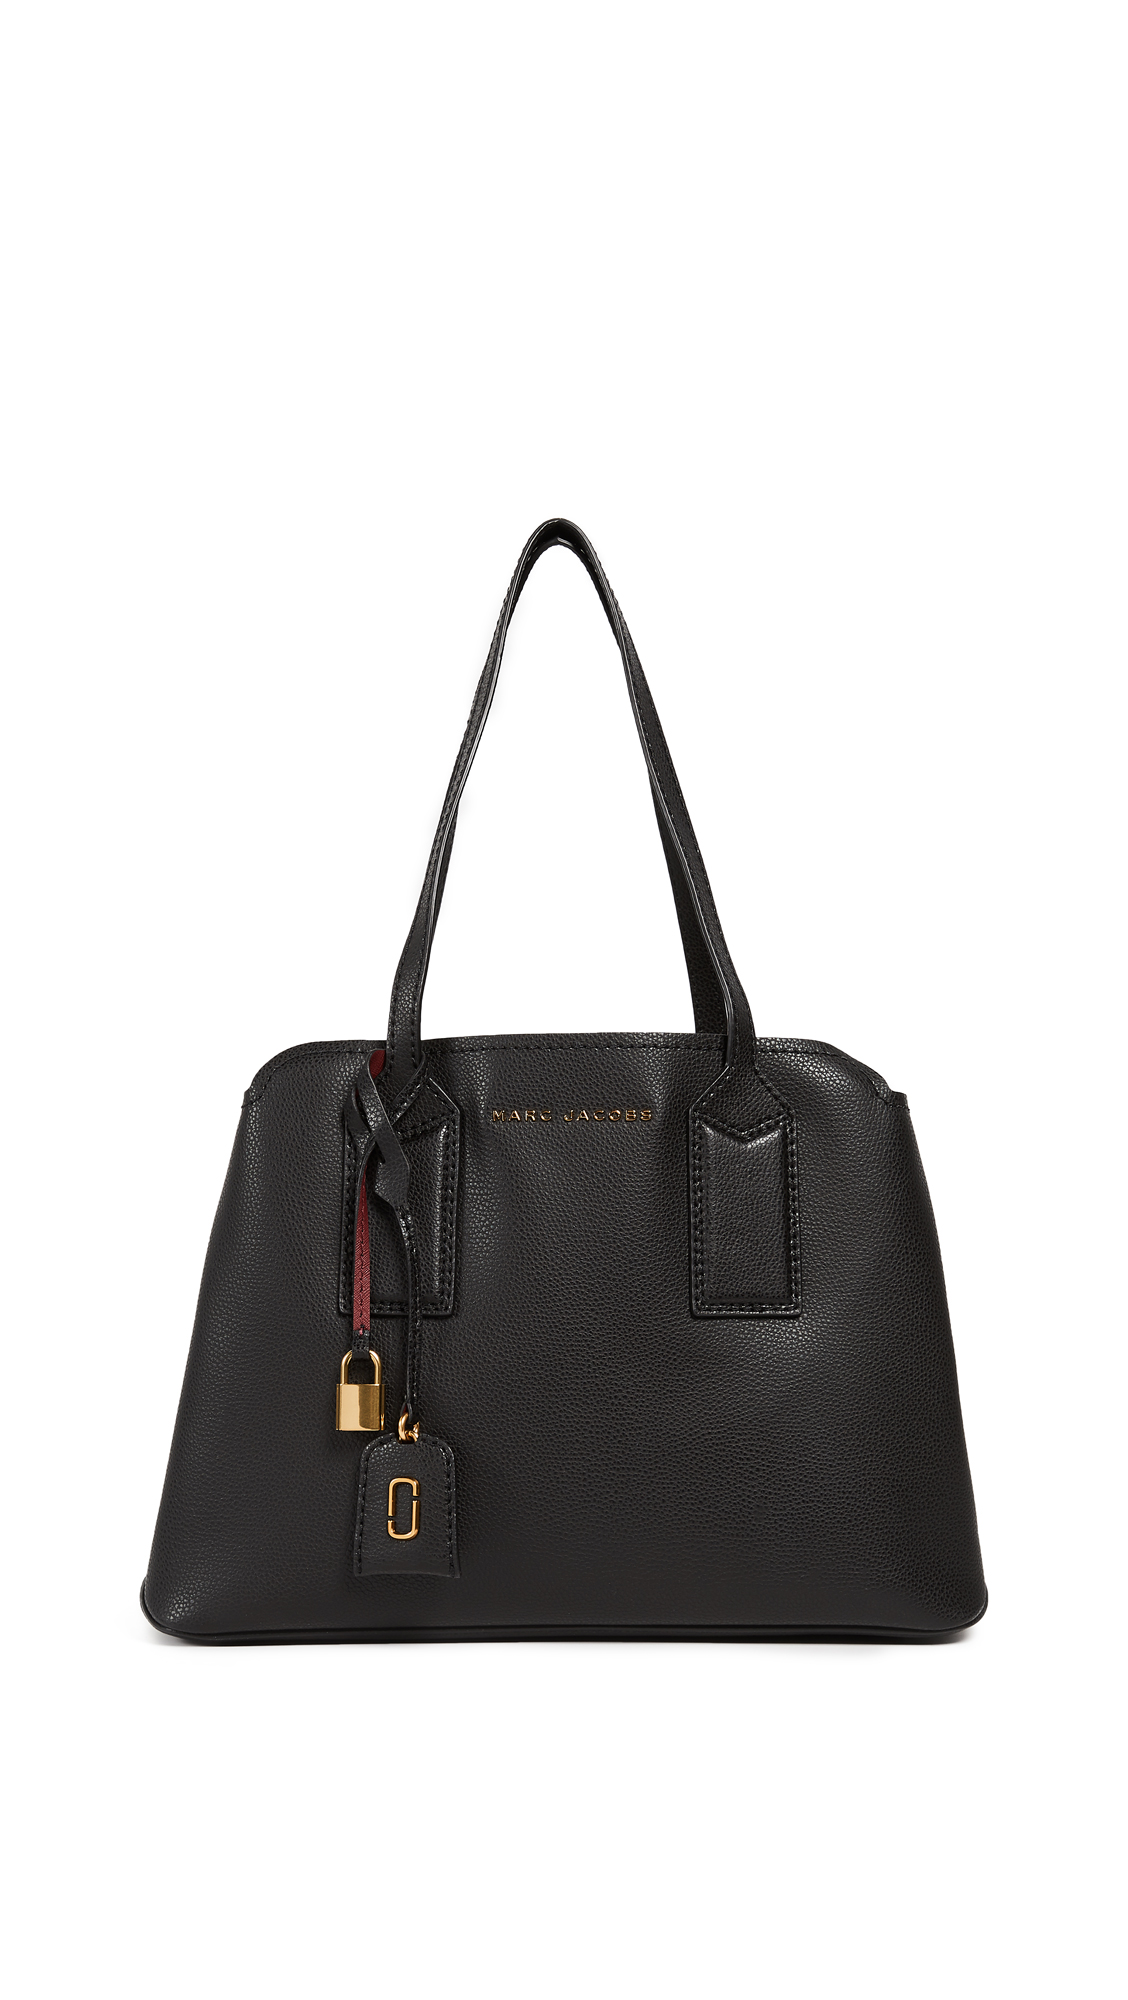 Marc Jacobs Editor Tote - Black